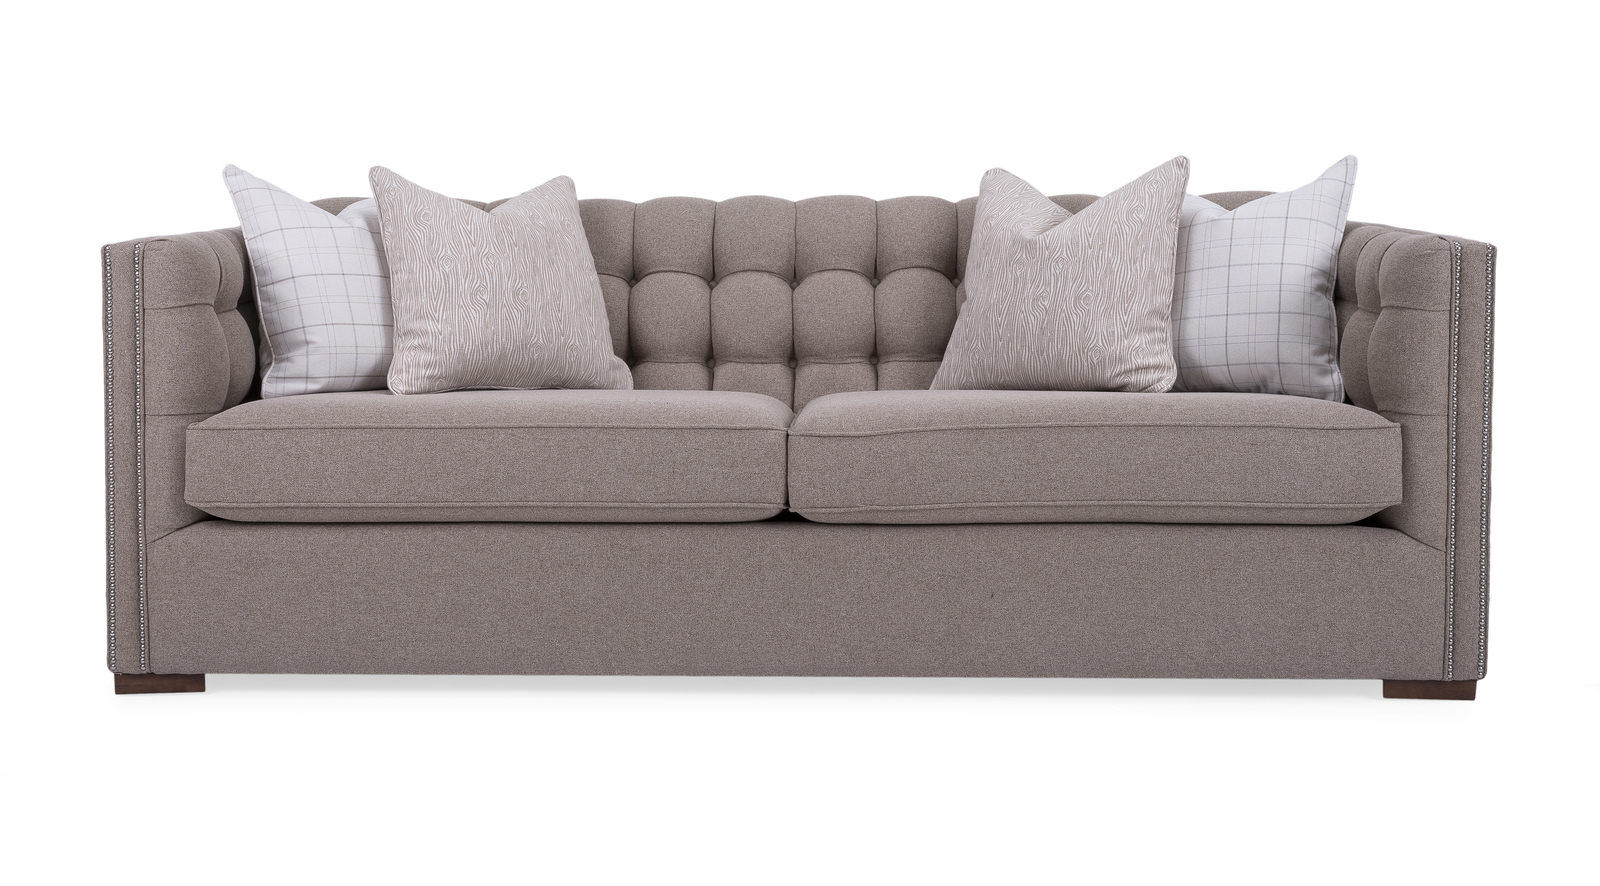 Sofa Salon Xtd6 7793 sofa Suite Decor Rest Furniture Ltd